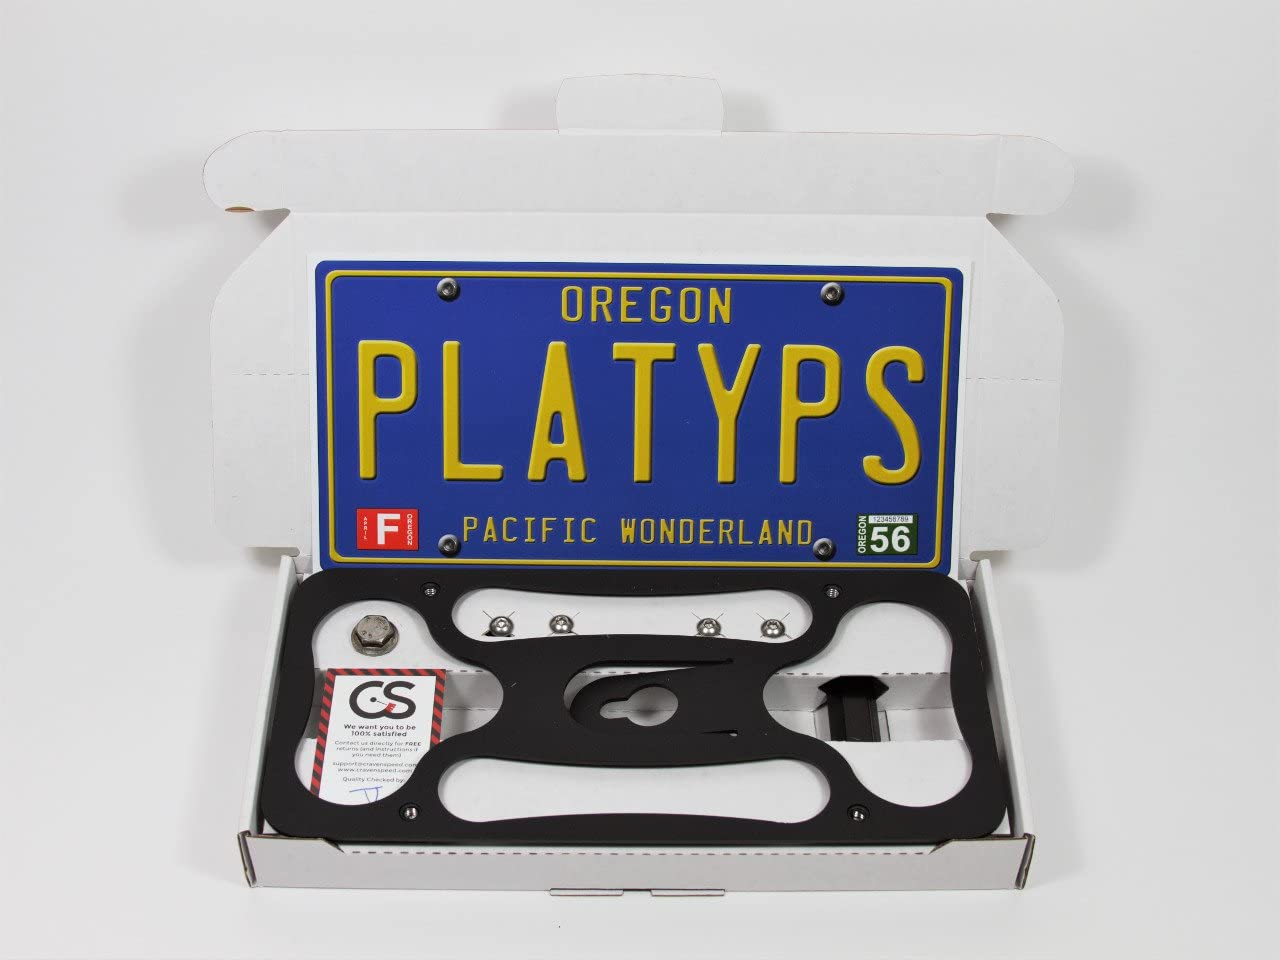 No Drilling Installs in Seconds 2013-2018 Made in USA Made of Stainless Steel /& Aluminum CravenSpeed Platypus License Plate Mount for Toyota RAV4